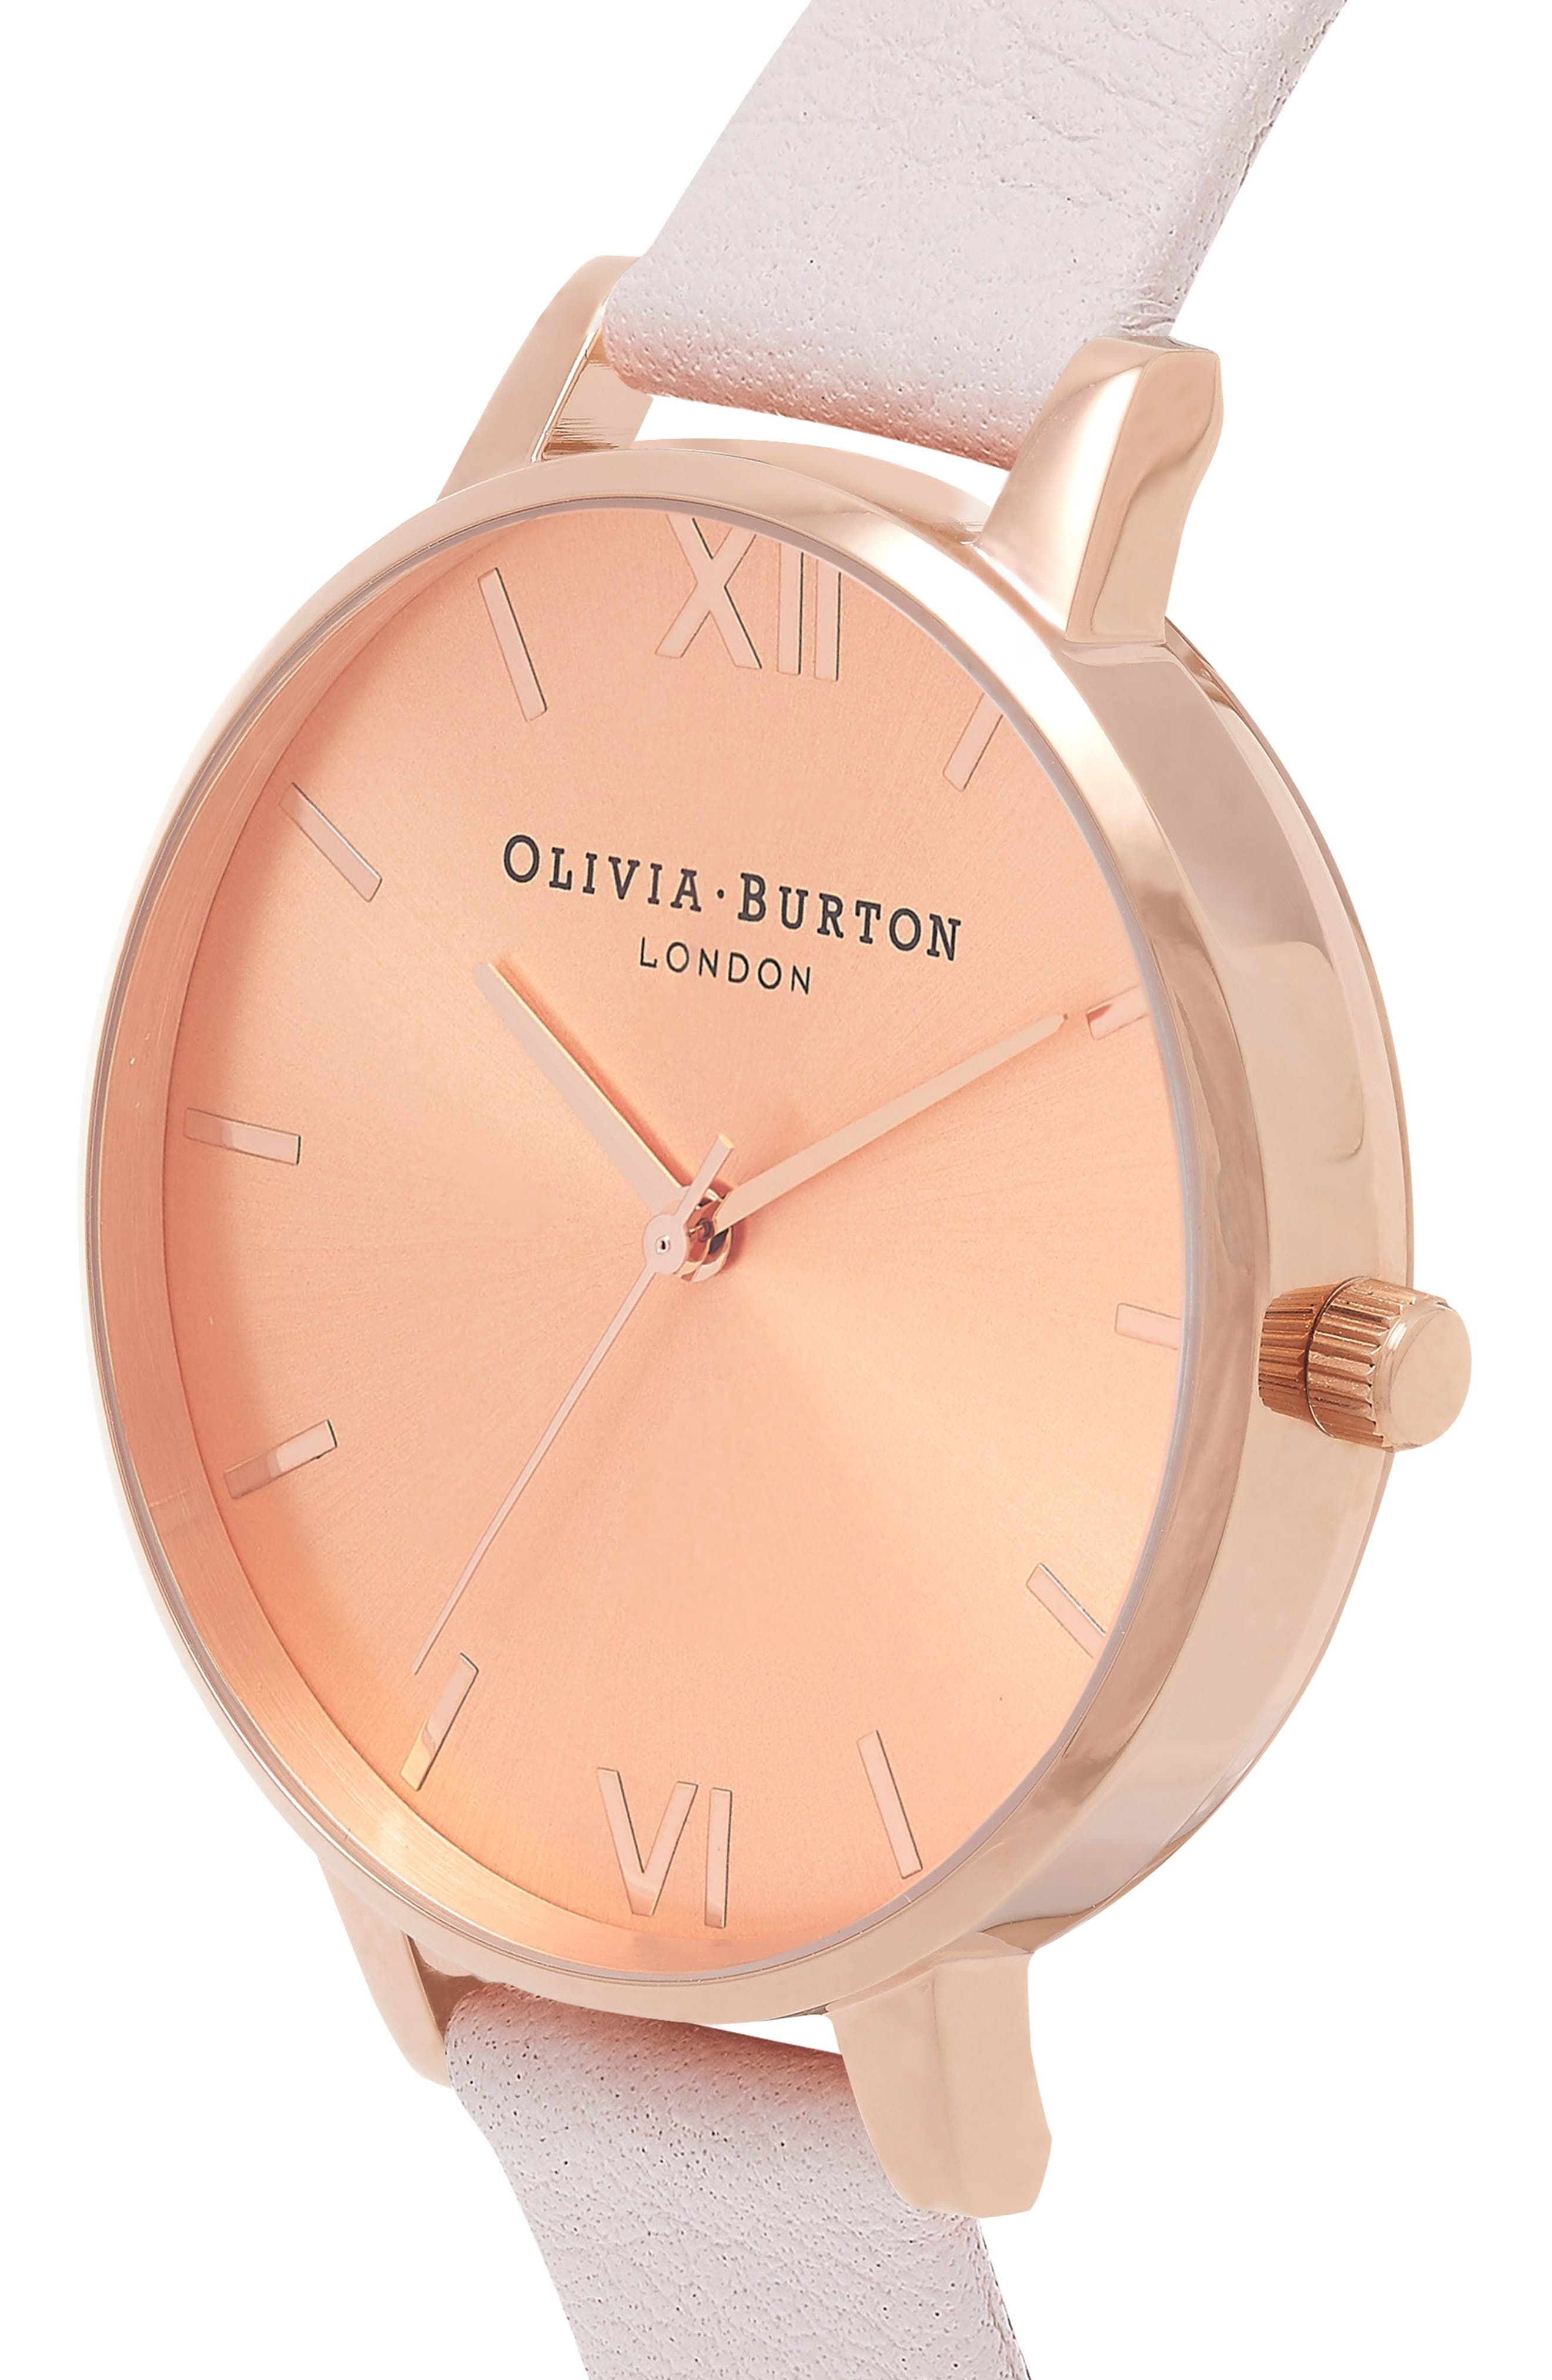 OLIVIA BURTON,                             Sunray Leather Strap Watch, 38mm,                             Alternate thumbnail 3, color,                             BLOSSOM/ ROSE GOLD